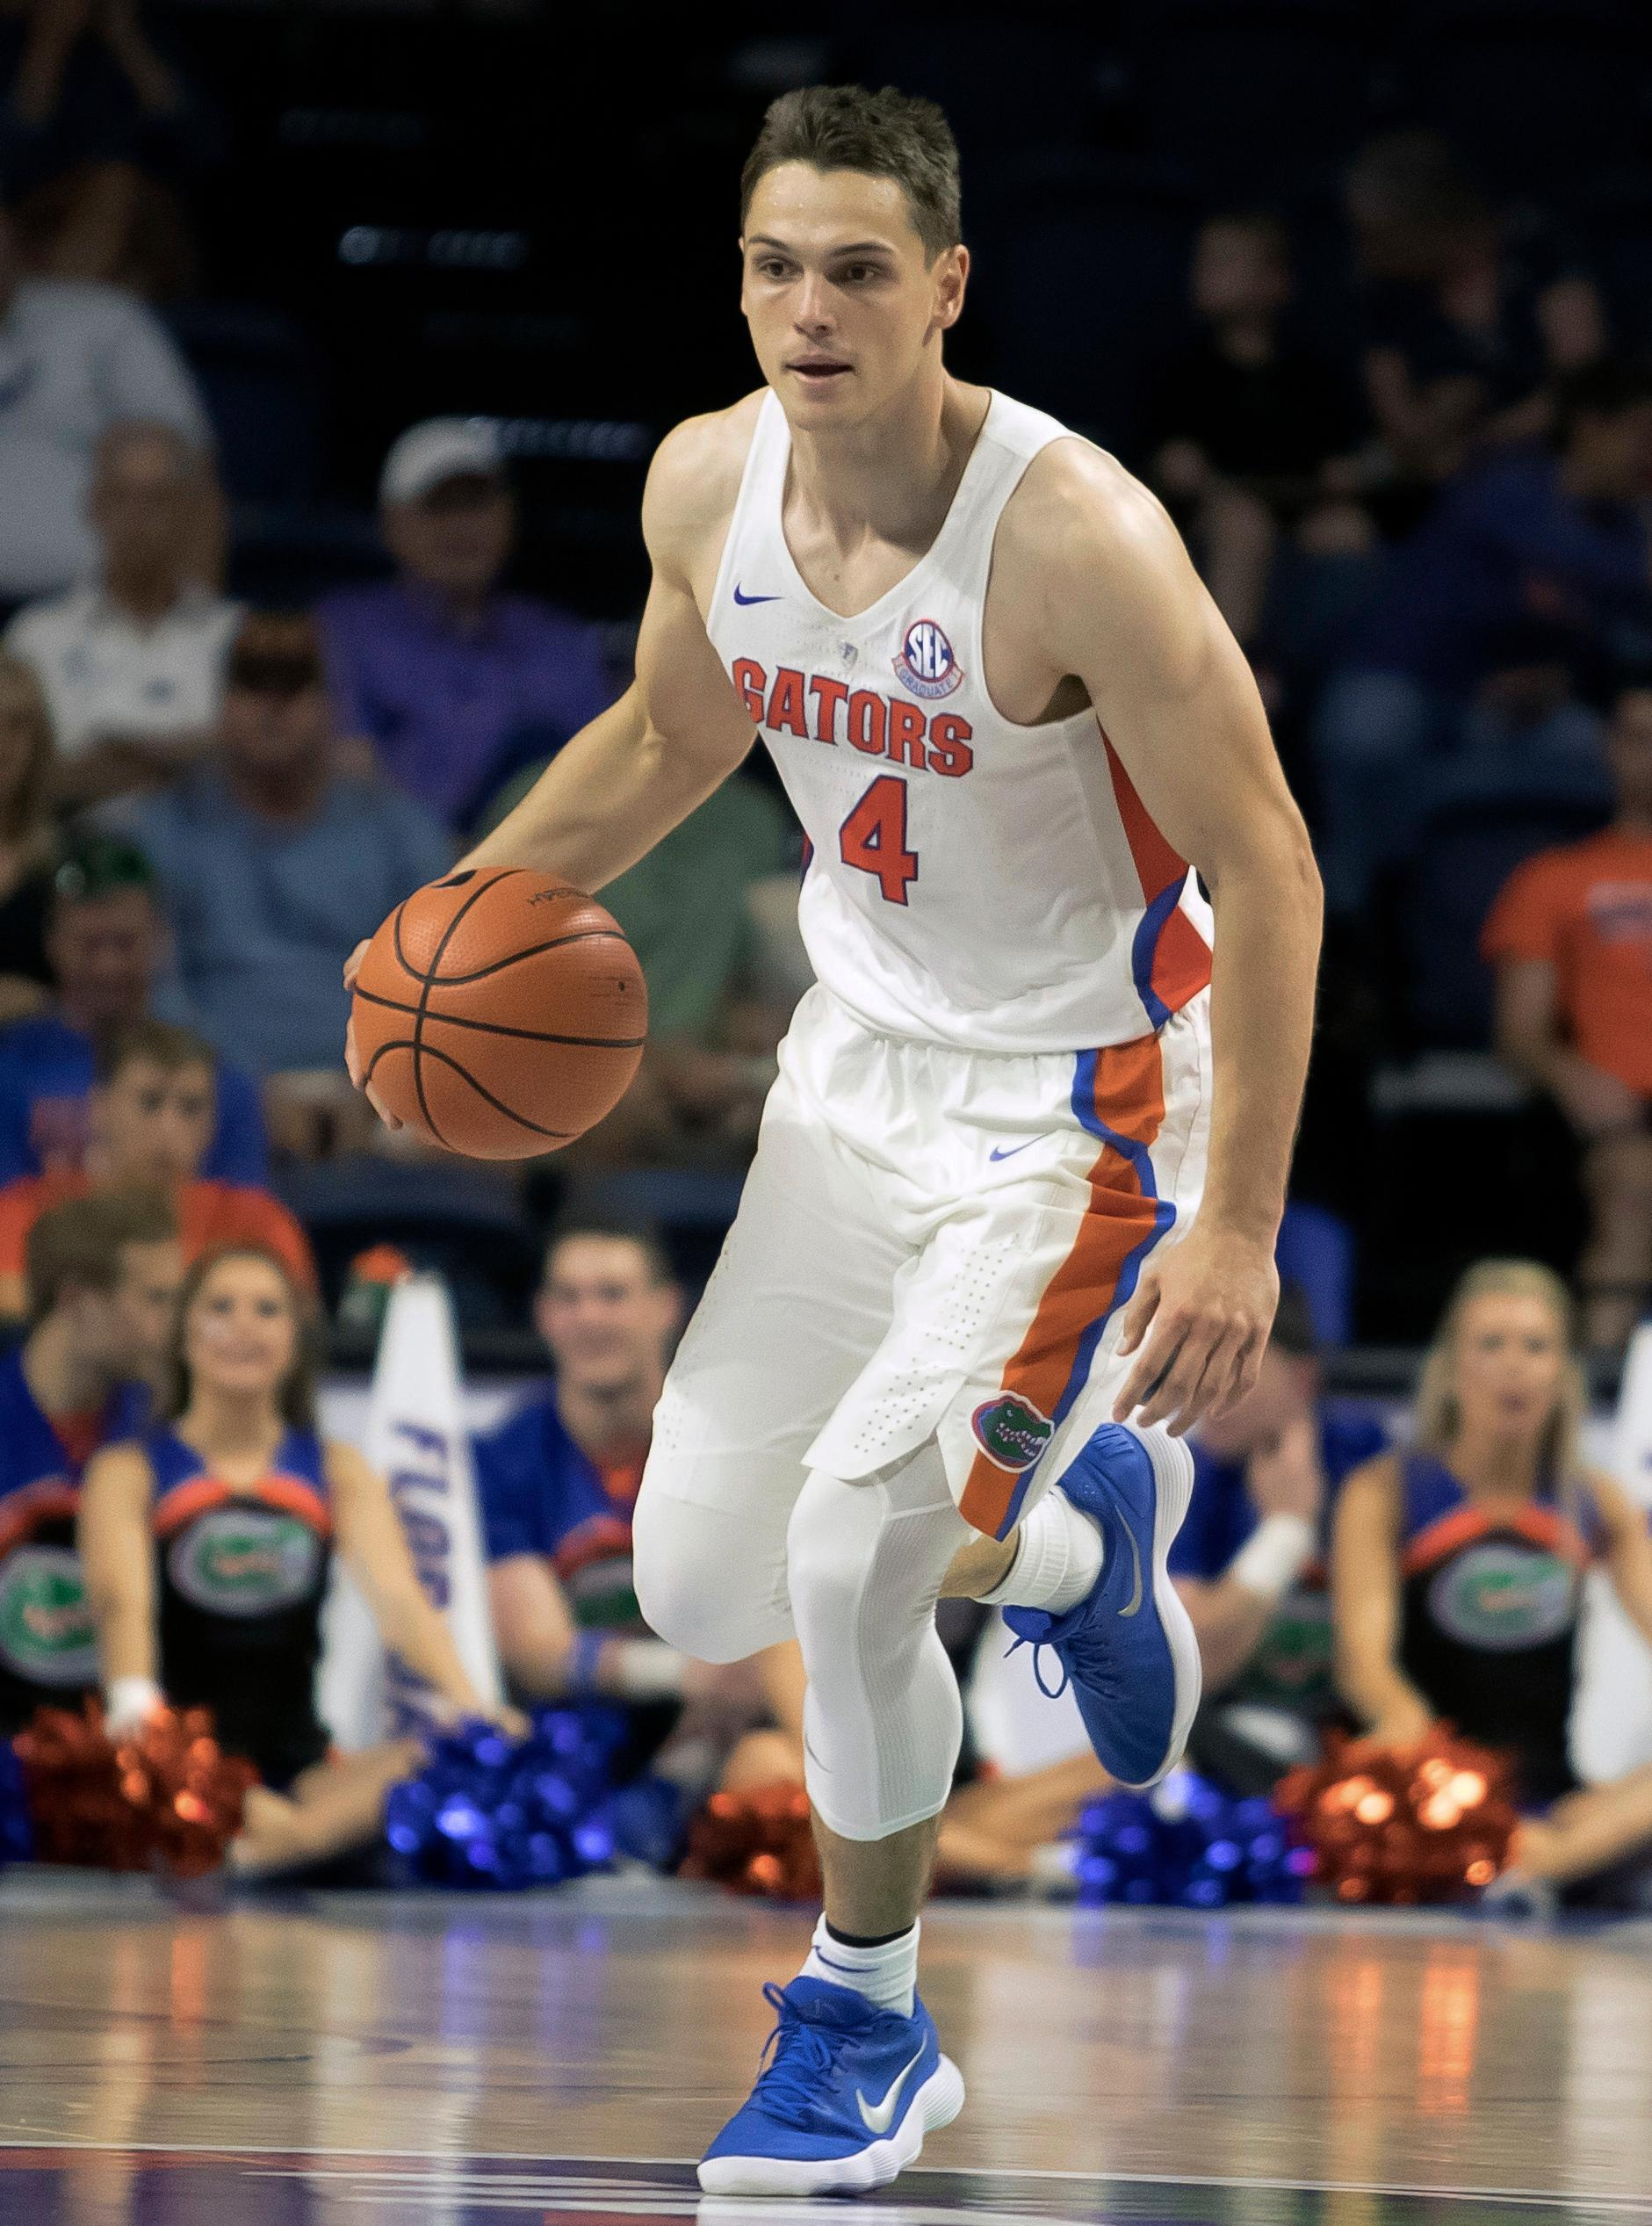 FILE - In this Nov. 5, 2017, file photo, Florida guard Egor Koulechov (4) dribbles against during the second half of an NCAA college exhibition basketball game in Gainesville, Fla. A few of last year's Final Four teams have added transfers to help restock their rosters. Florida added Koulechov and Jalen Hudson. (AP Photo/Ron Irby, File)